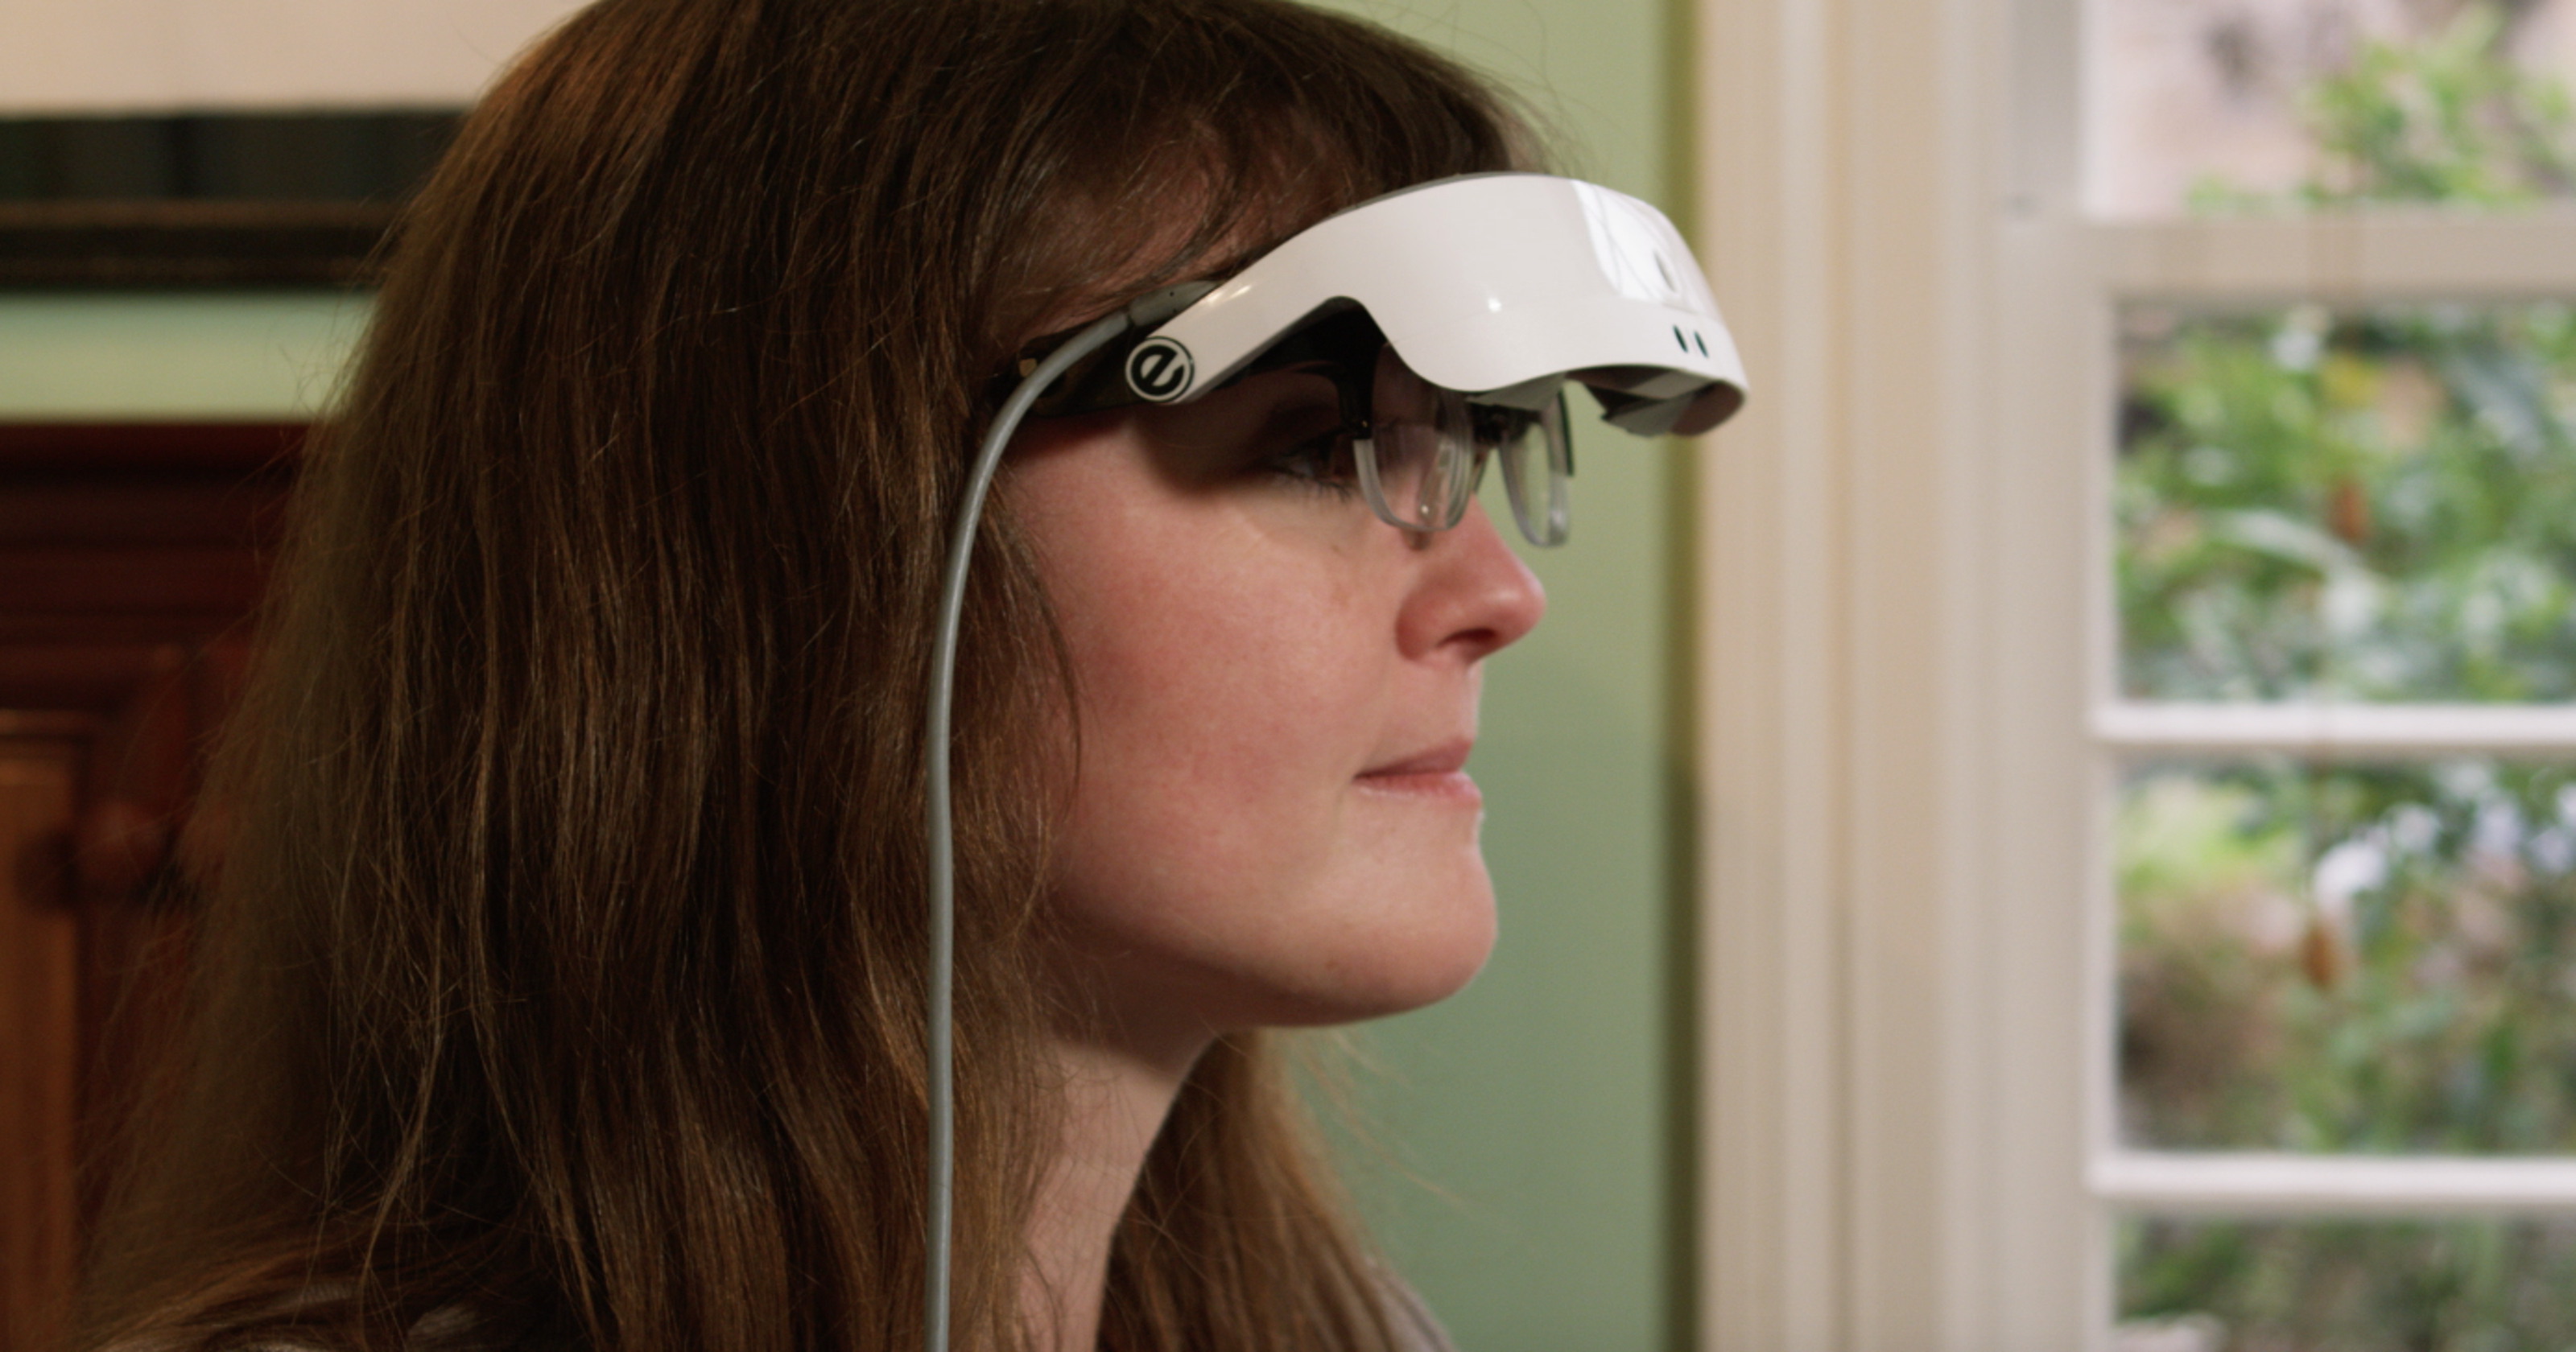 e95553fdfa High-tech glasses are helping blind people see